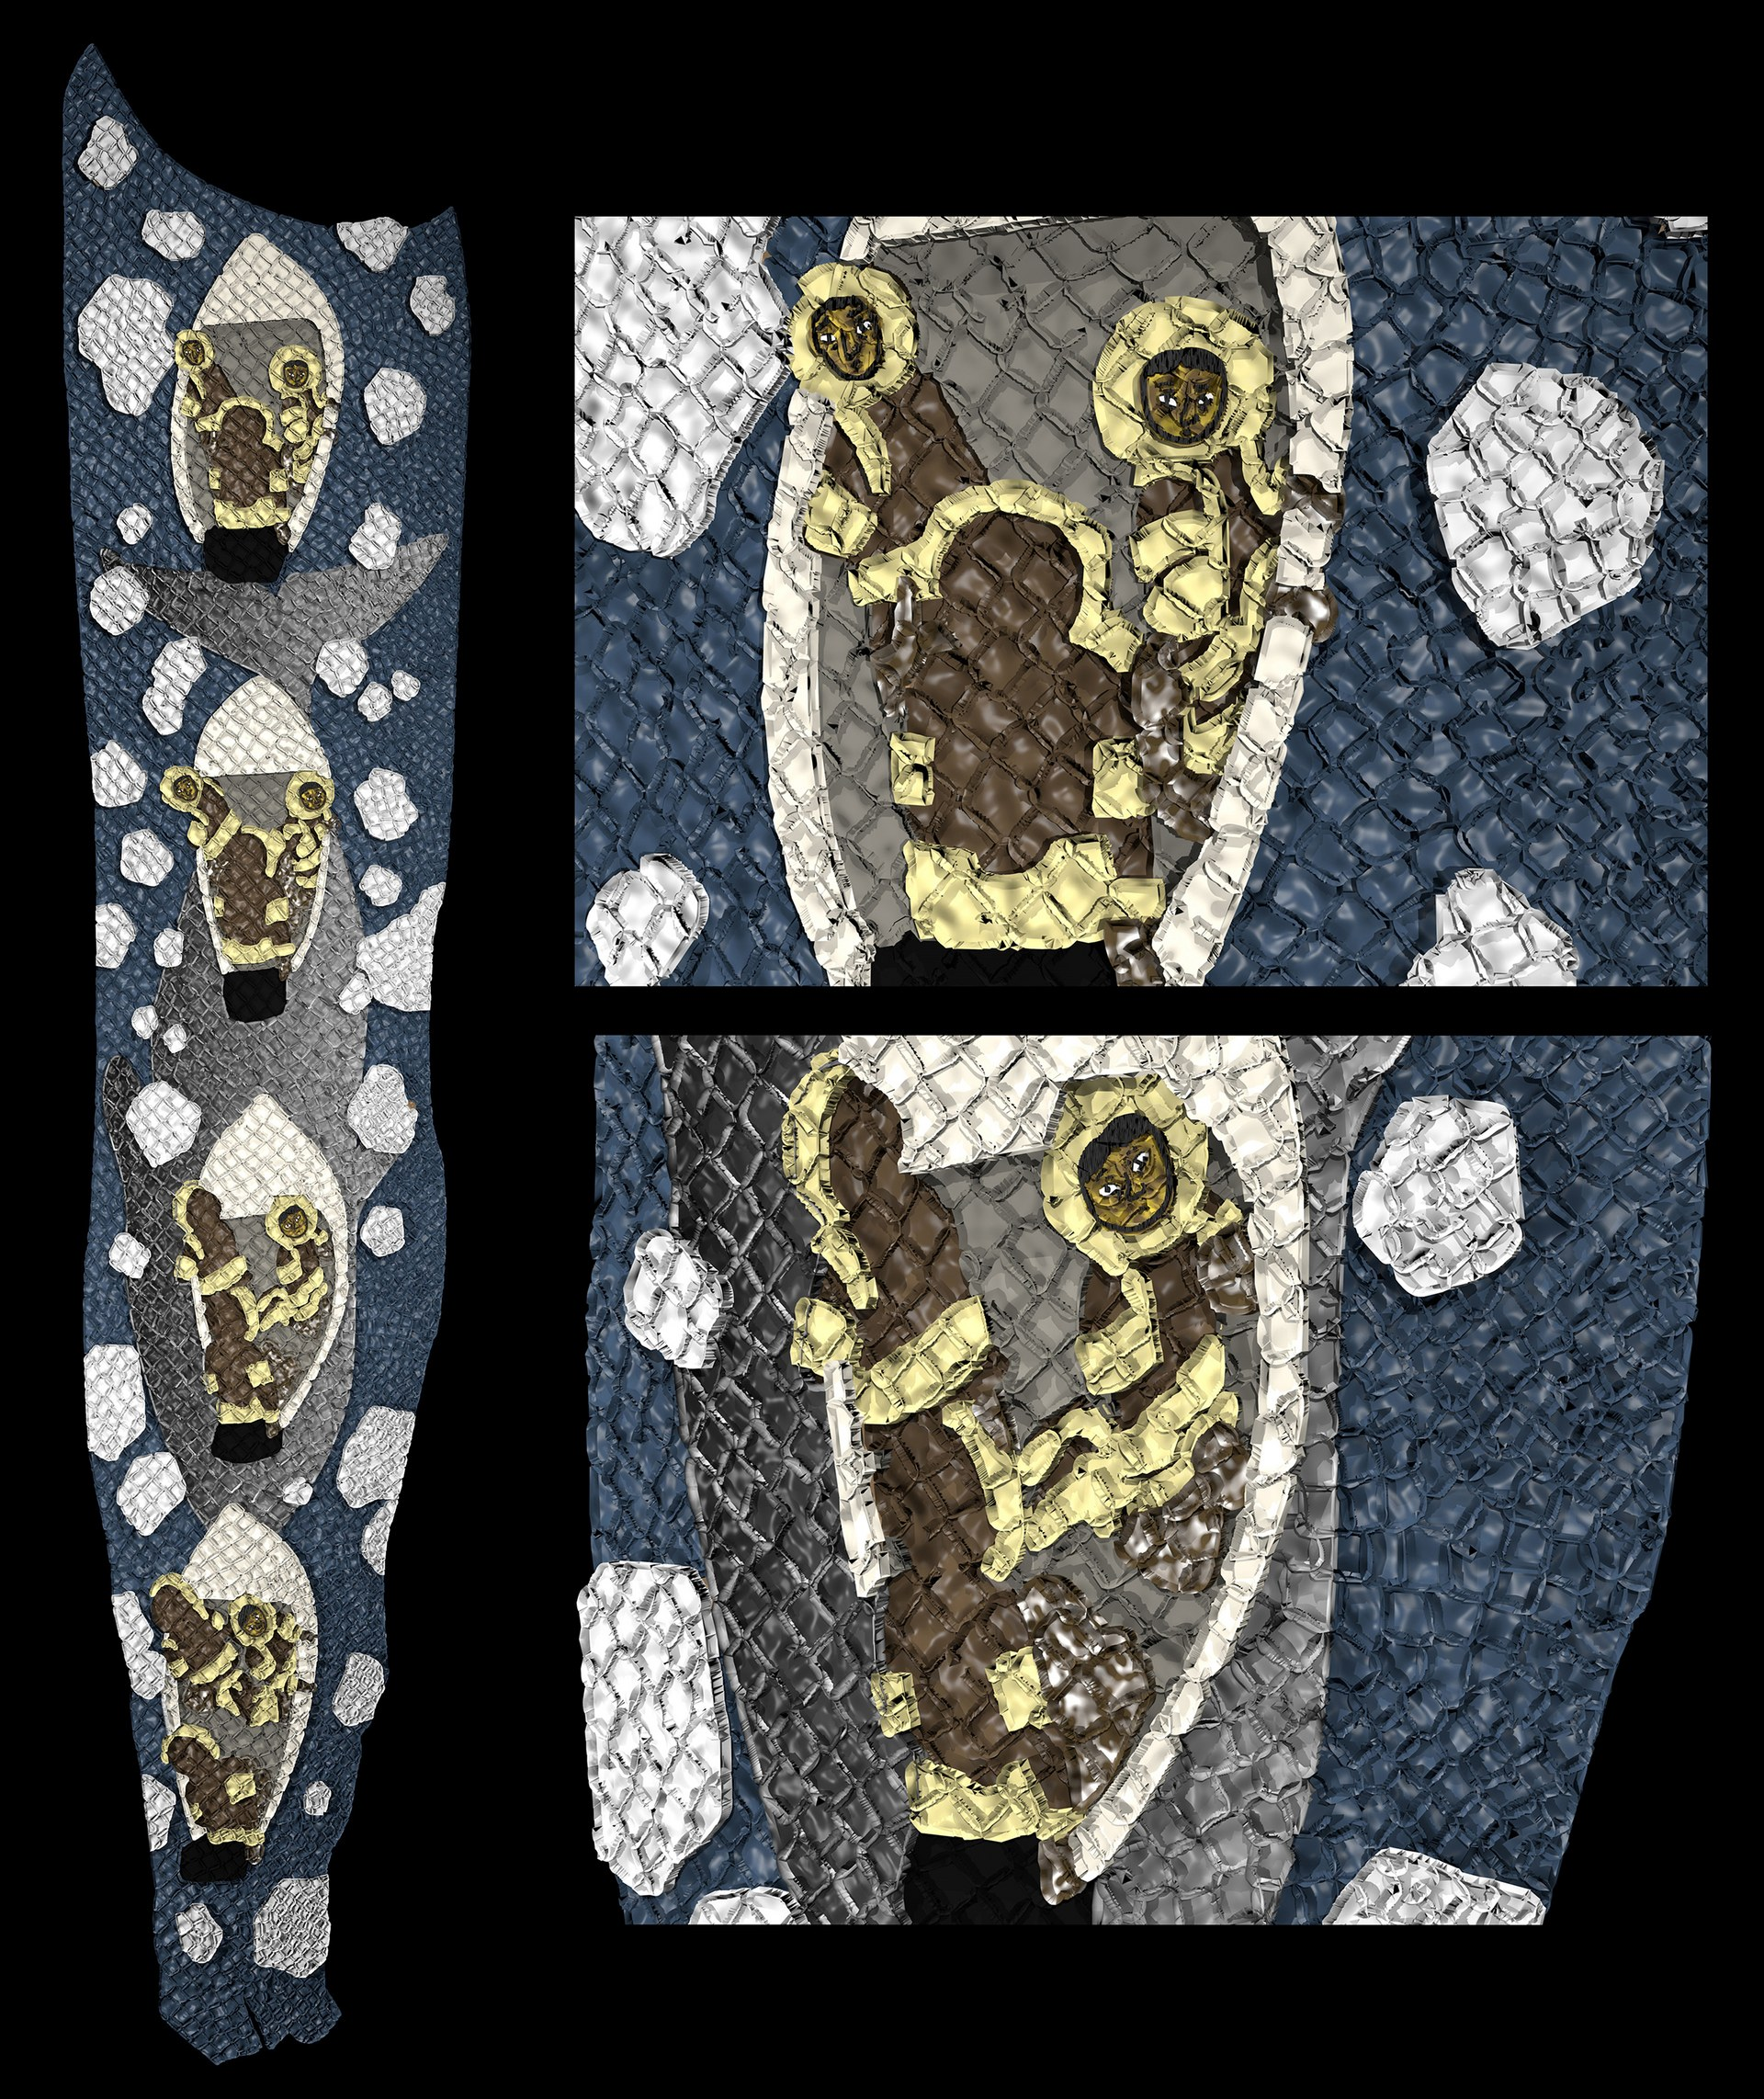 Fish skin marquetry and embroidered details